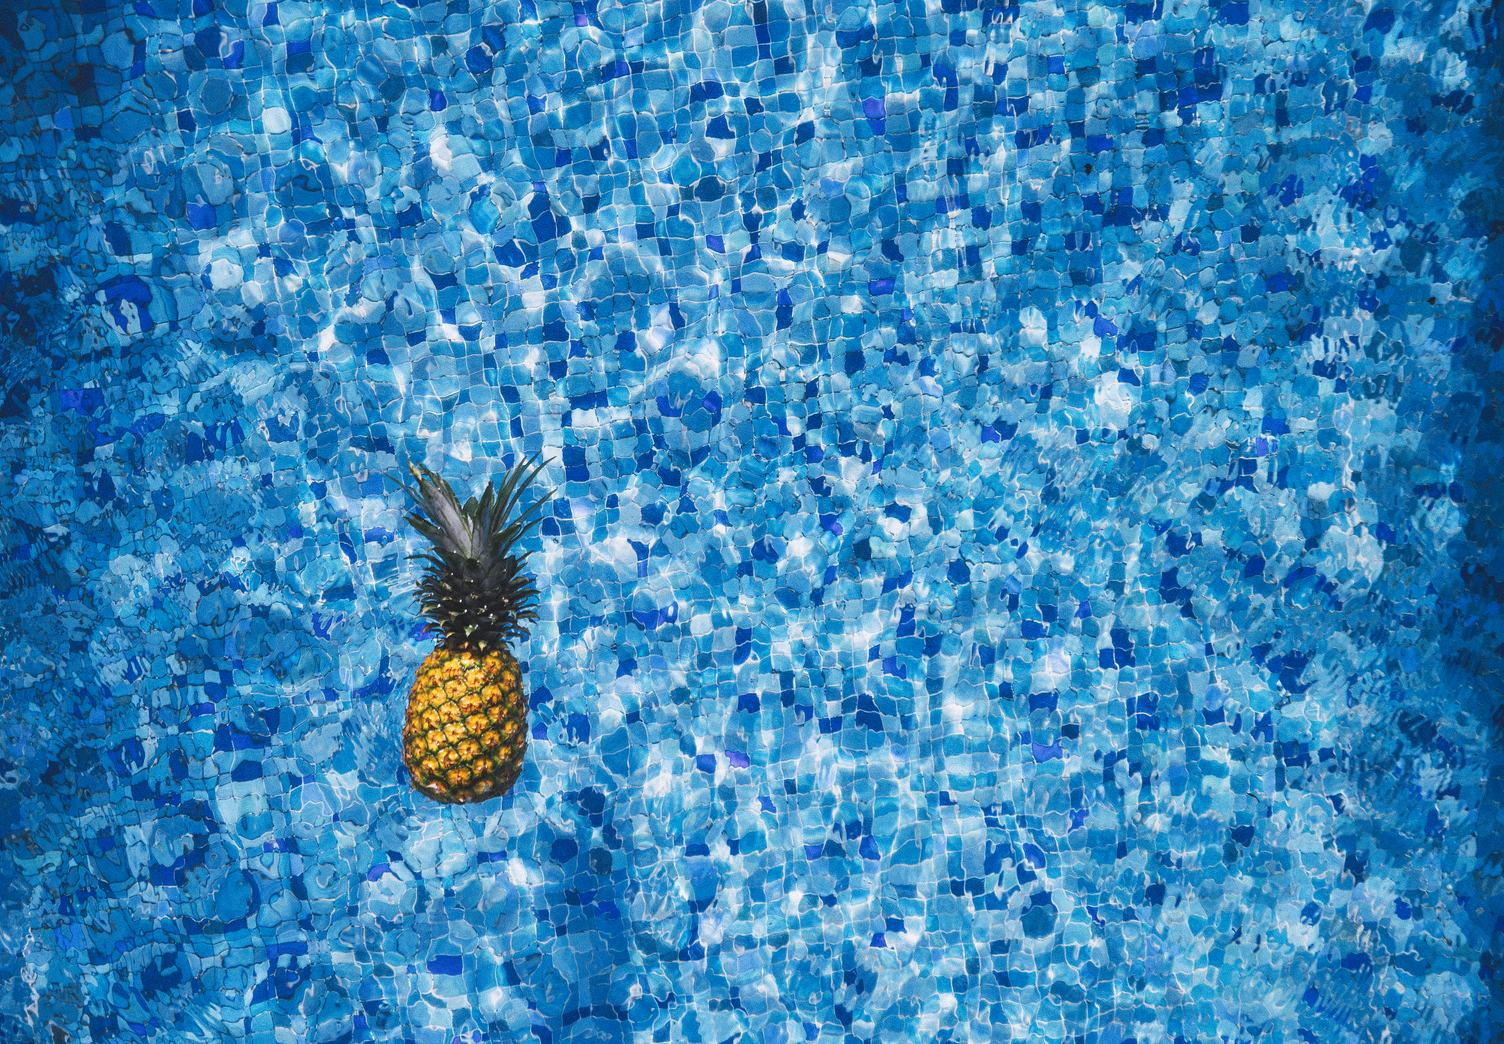 Pineapple in the Swimming Pool